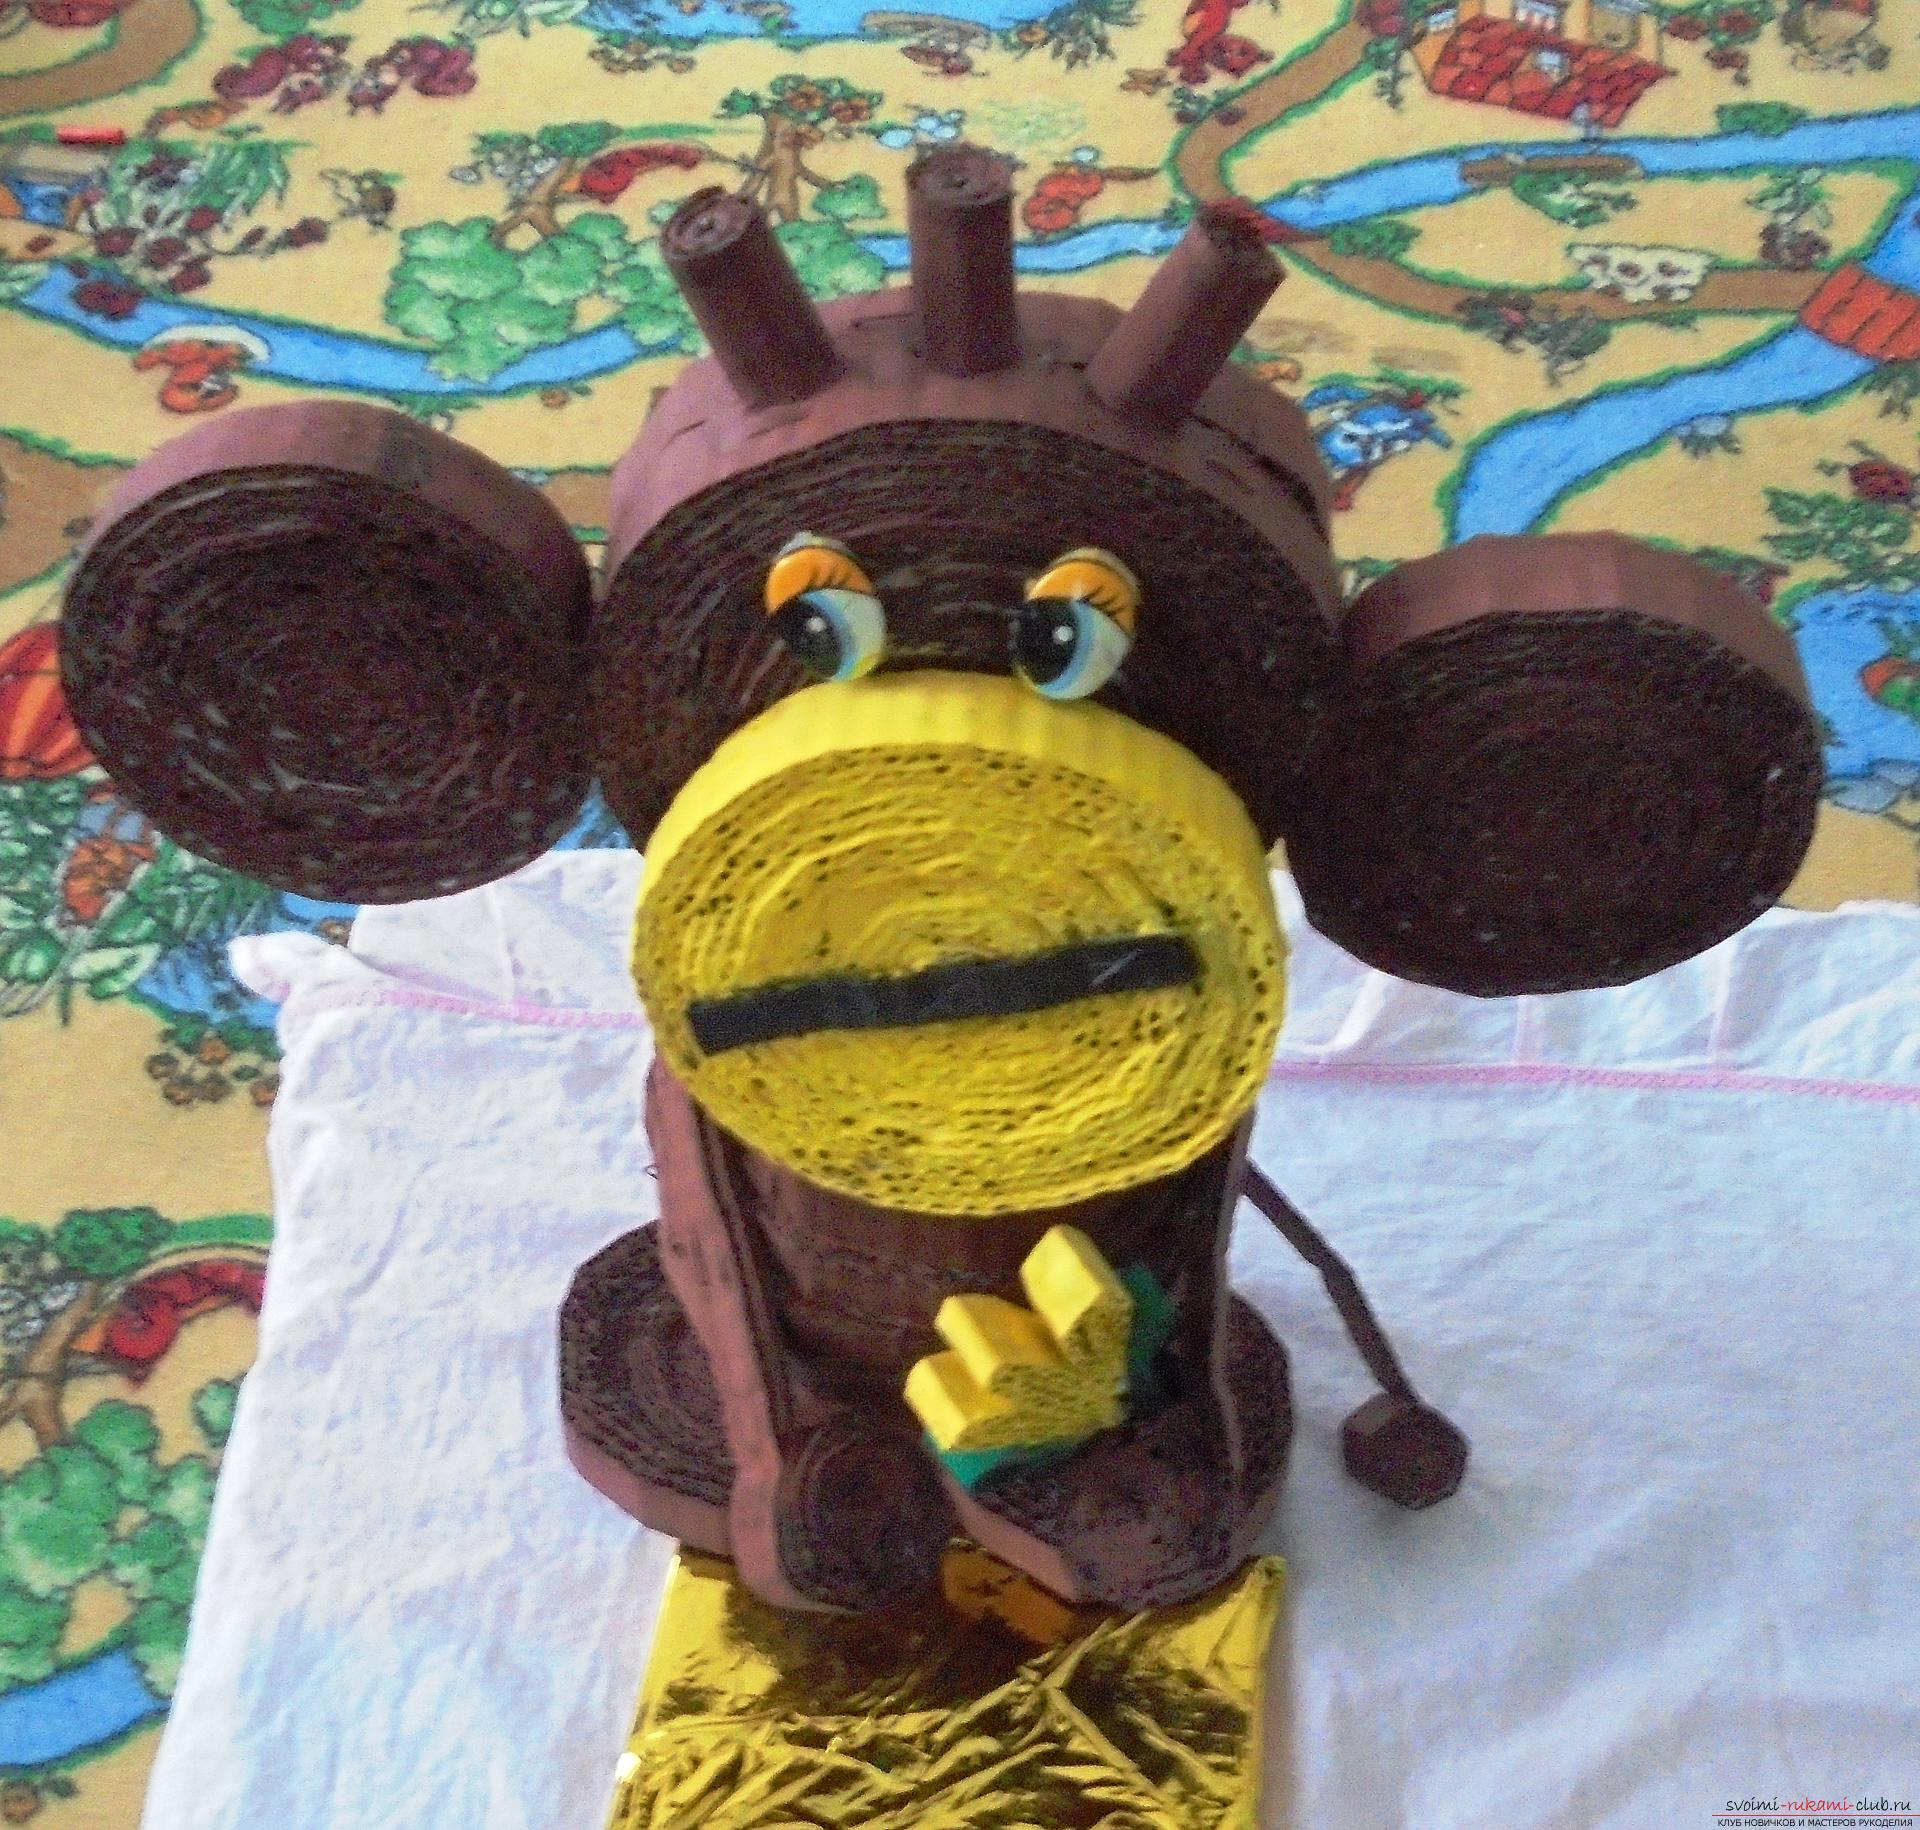 Competition for the best New Year's craft made us make an unusual monkey - a symbol of 2016. Photo number 1